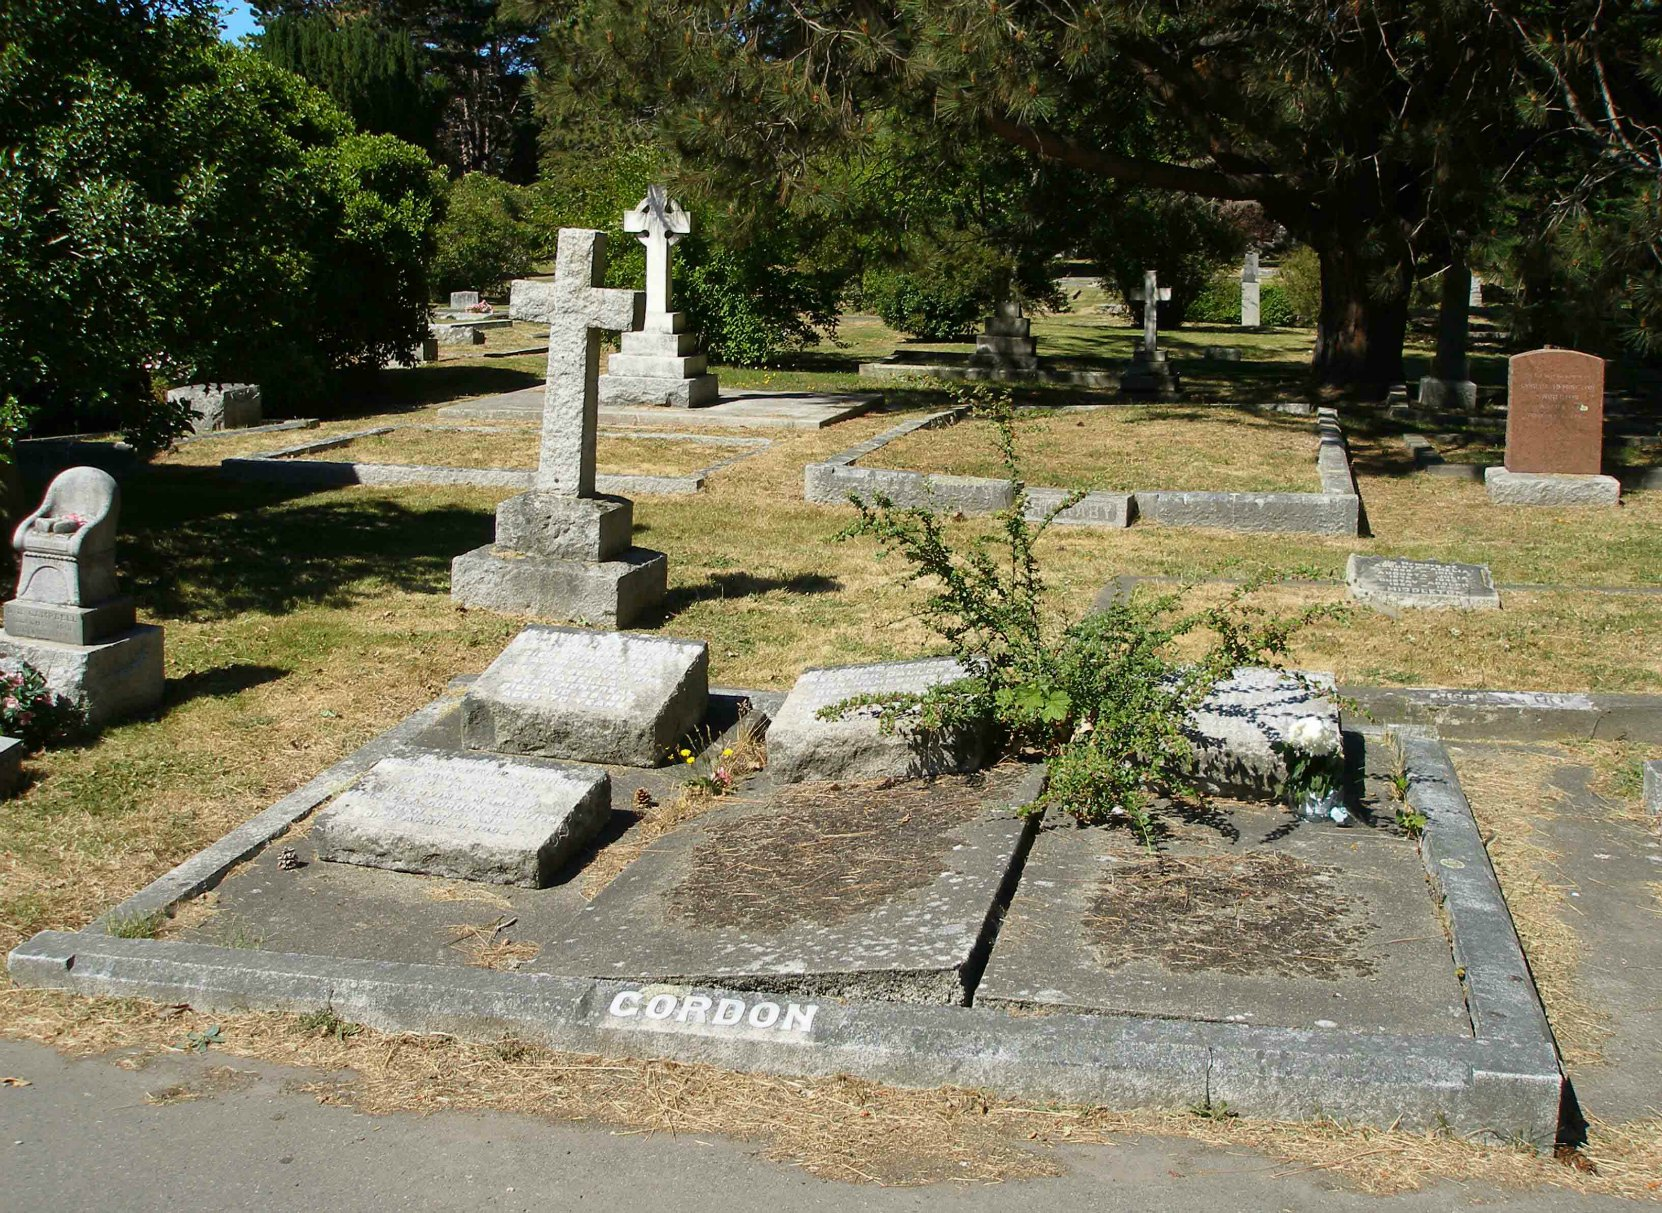 William Gordon is buried in the Gordon family plot in Ross Bay Cemetery, Victoria, B.C.